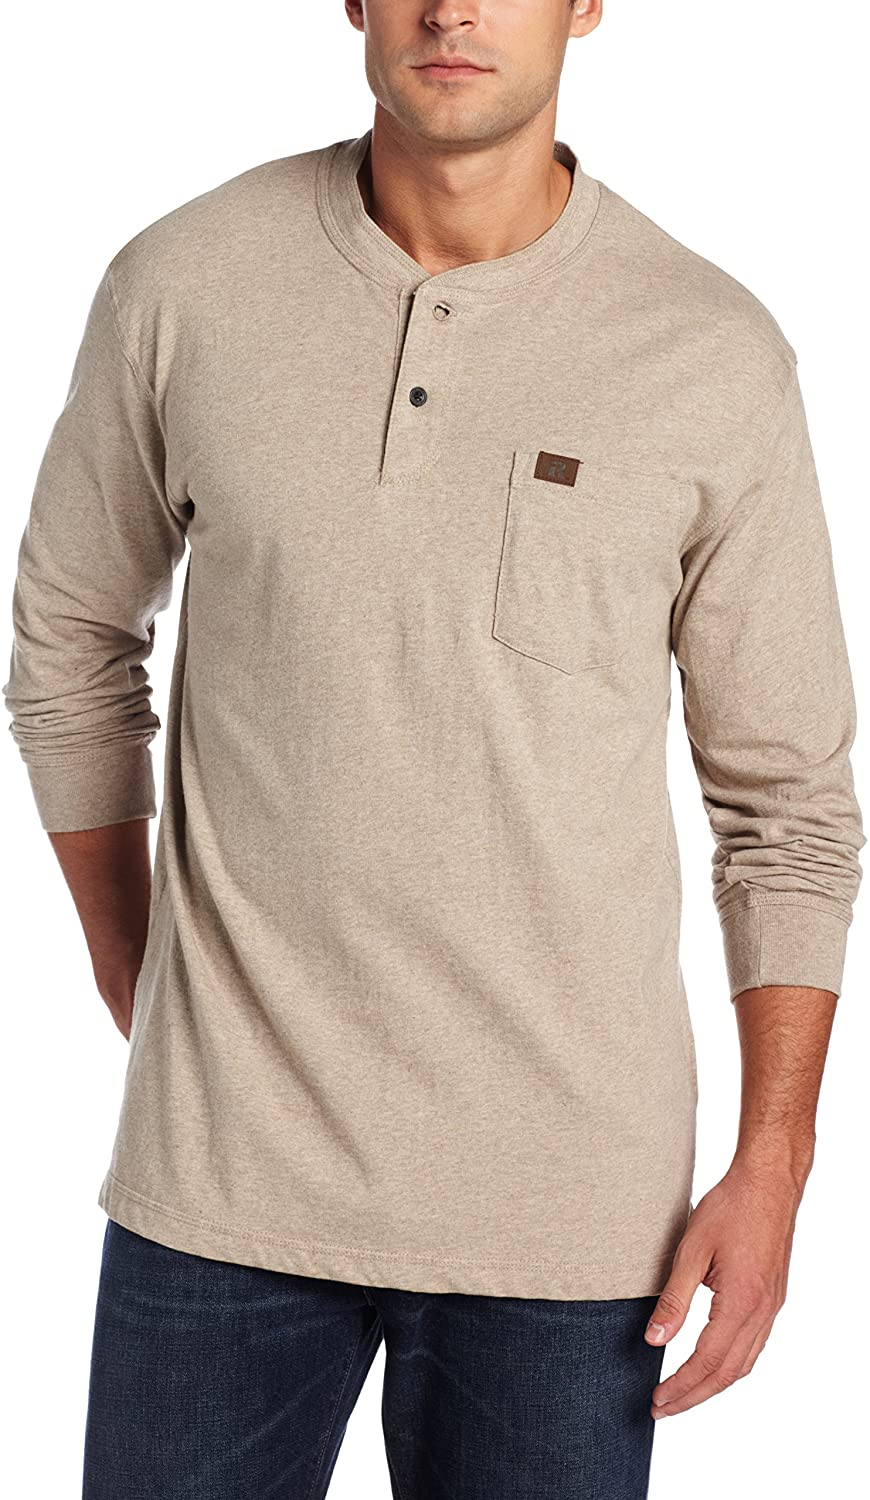 Wrangler Riggs Workwear Men's Long Sleeve Henley, Oatmeal Heather, X-Large